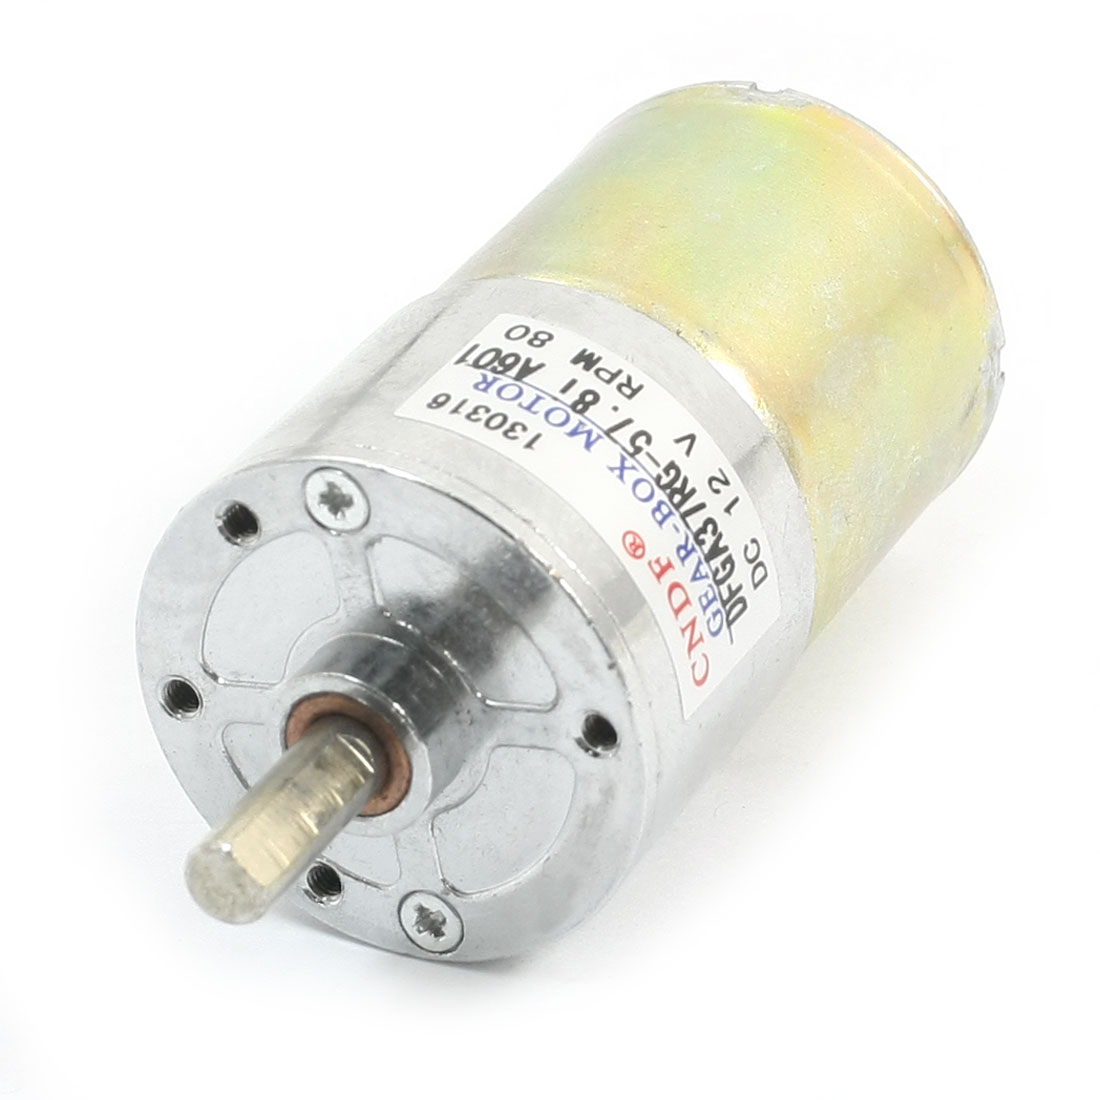 DC 12V 80RPM Metal Shell Electric Tool Spare Parts DC Gear Box Motor